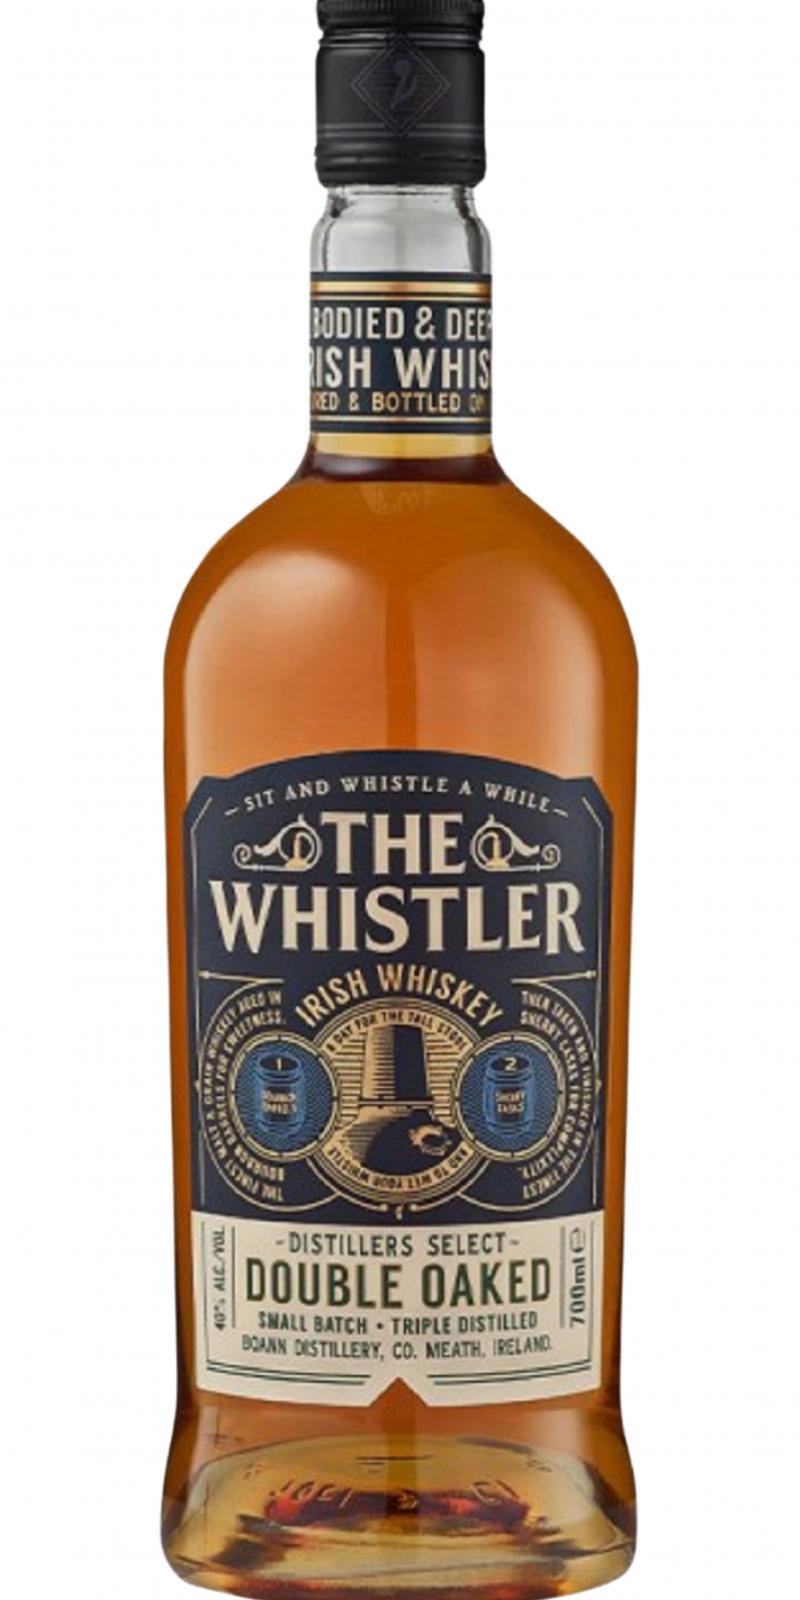 The Whistler Double Oaked BoD